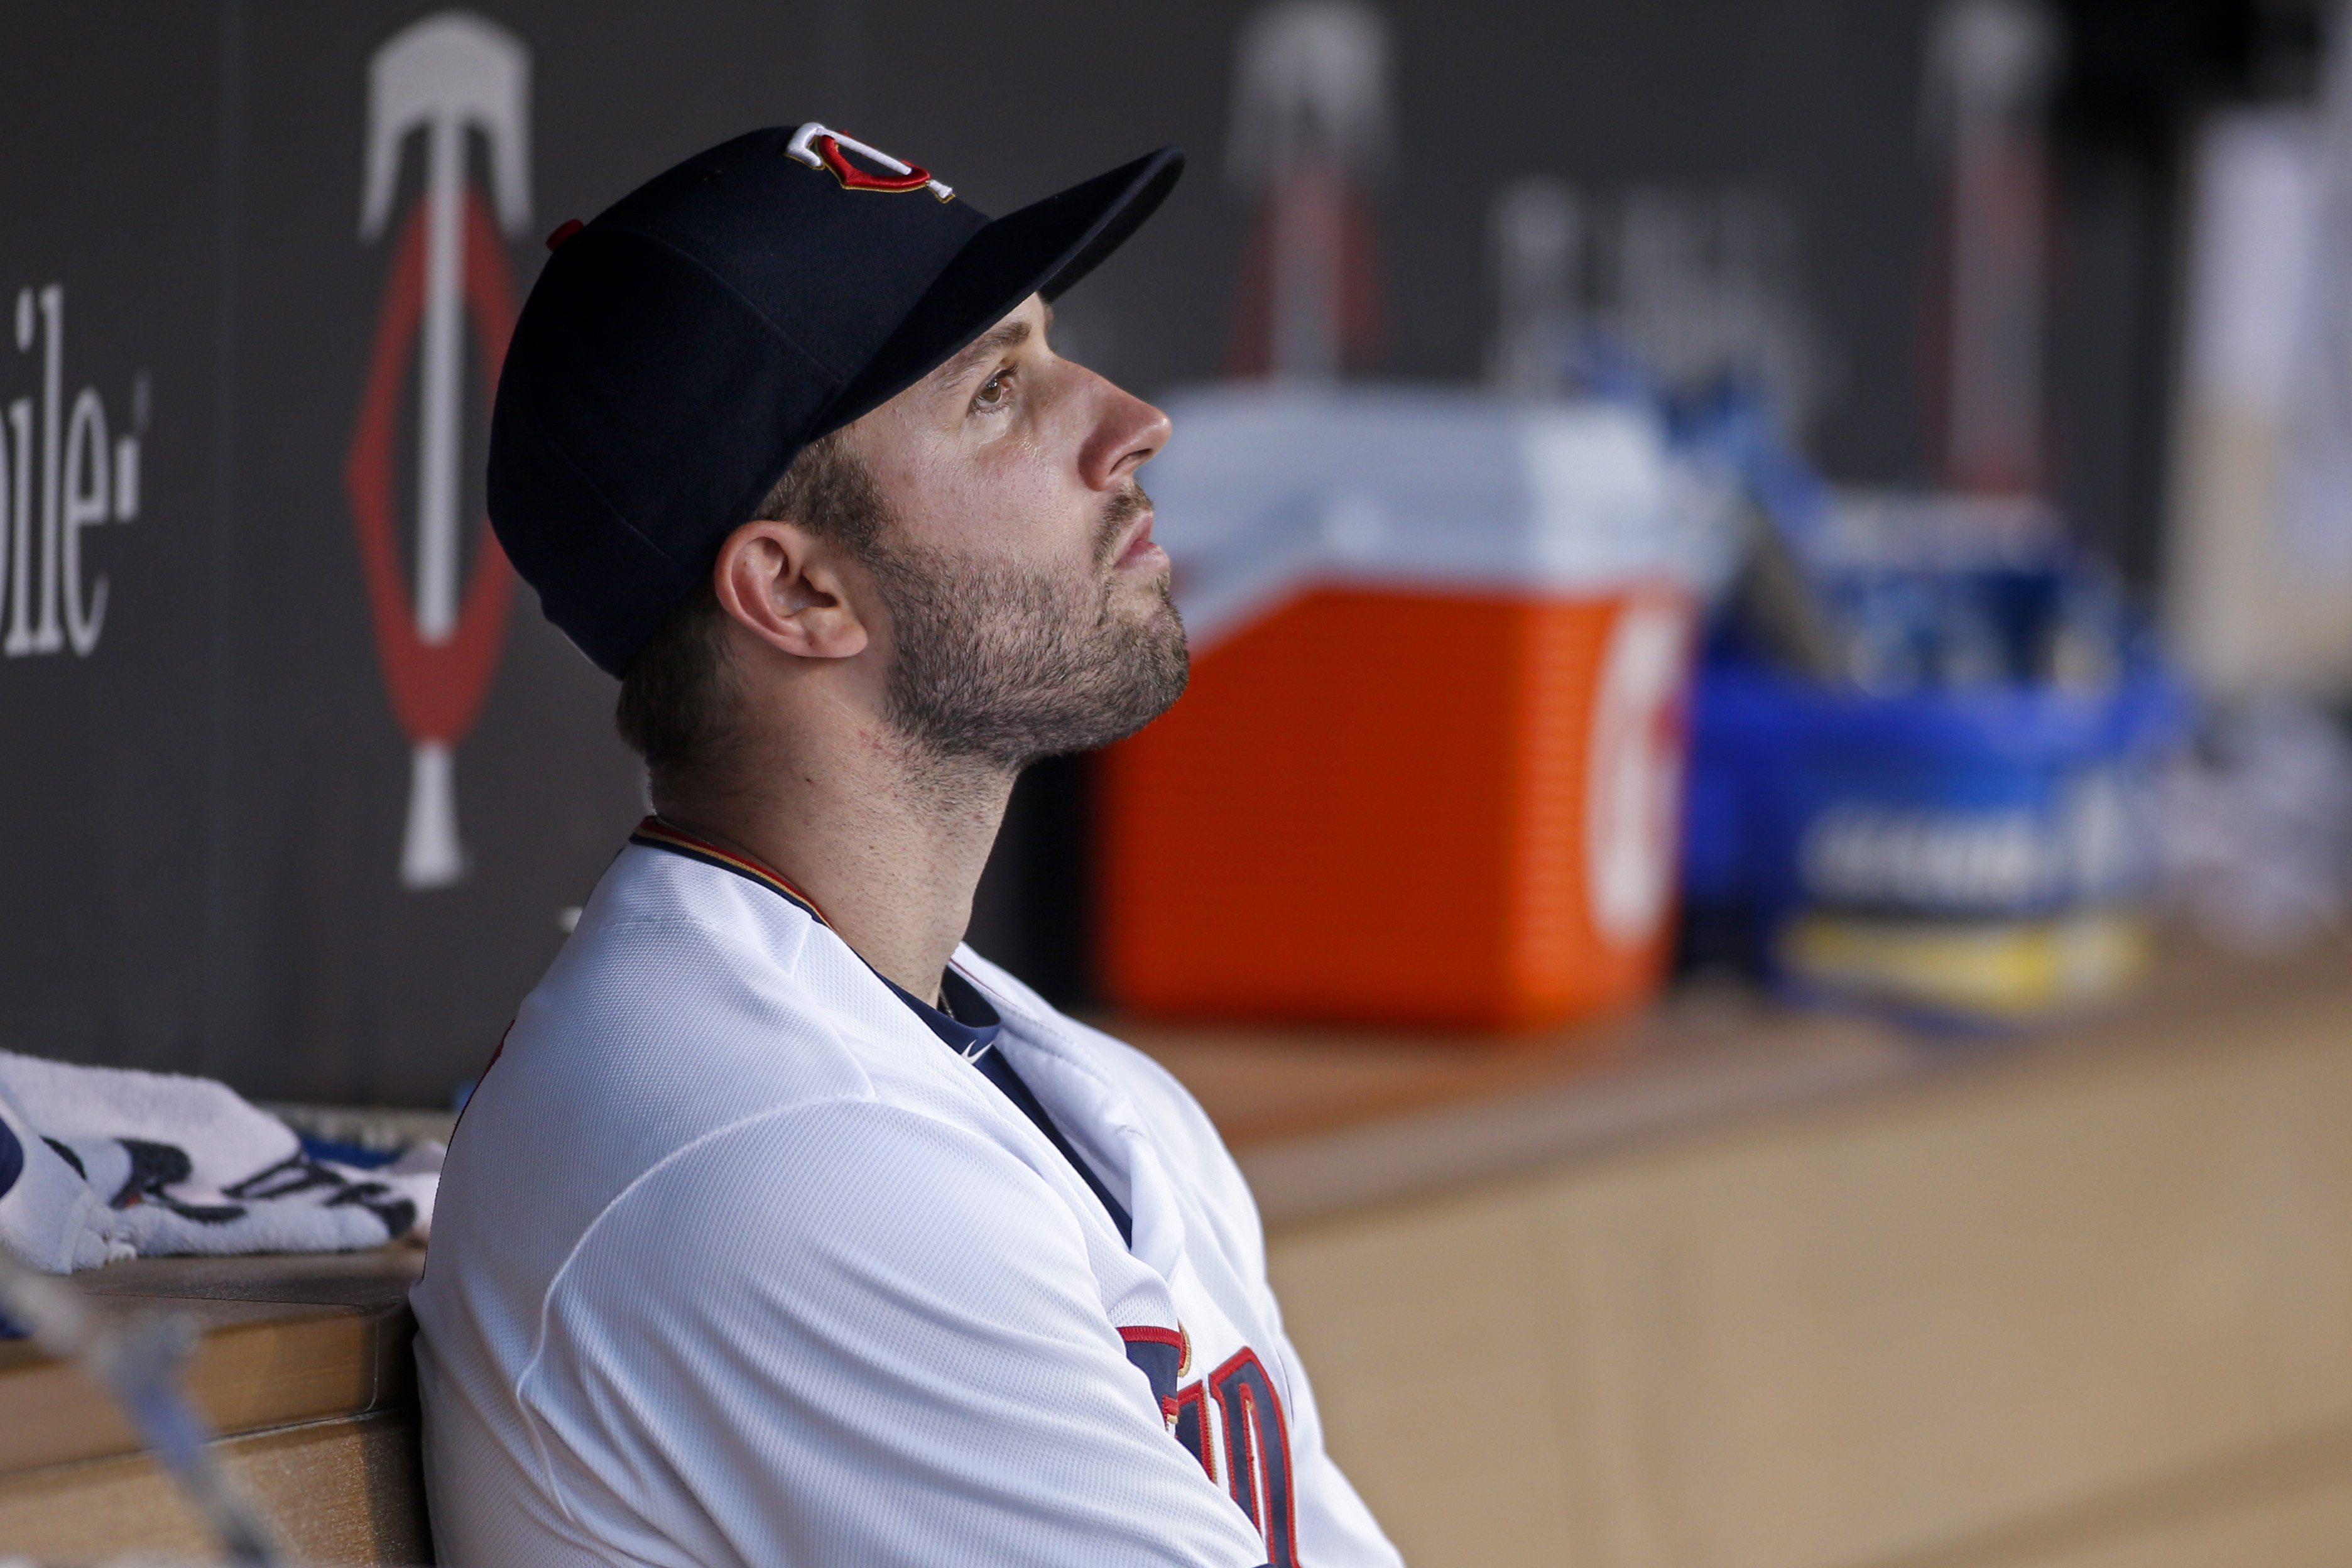 Minnesota Twins starting pitcher Pat Dean sits in the dugout after being removed against the Miami Marlins in the fifth inning of a baseball game Tuesday, June 7, 2016, in Minneapolis. (AP Photo/Bruce Kluckhohn)